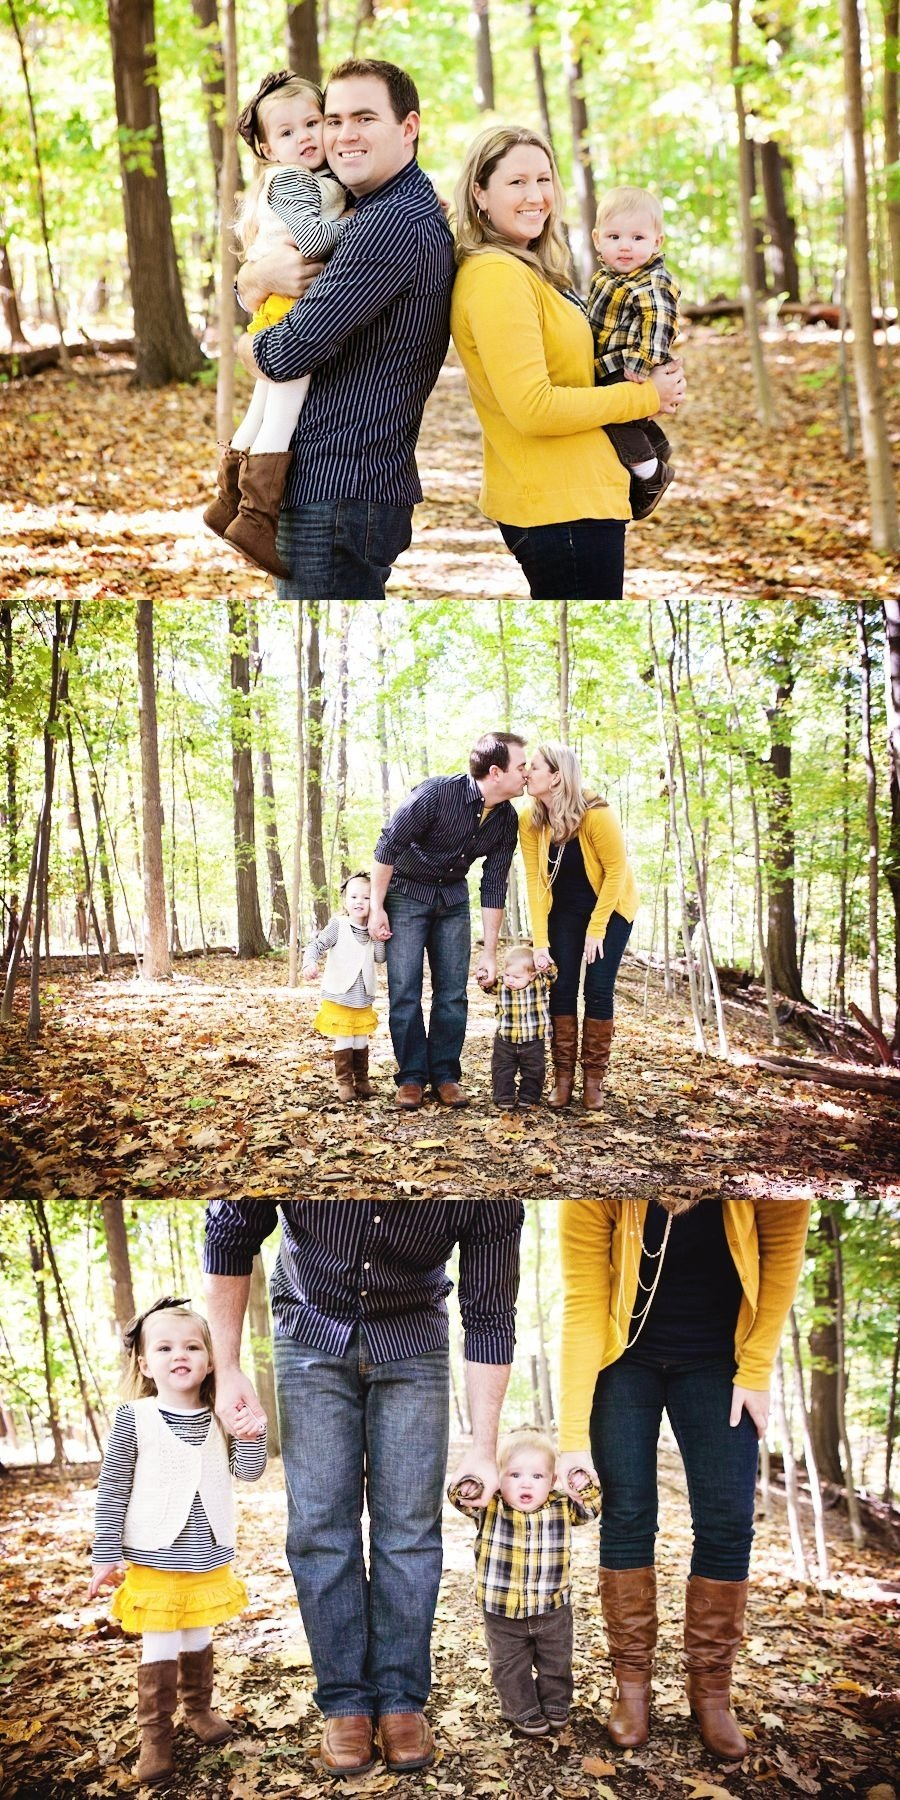 10 Perfect Ideas For Family Pictures Outfits Awesome Example Of Great Outfit Coordination Not Matching